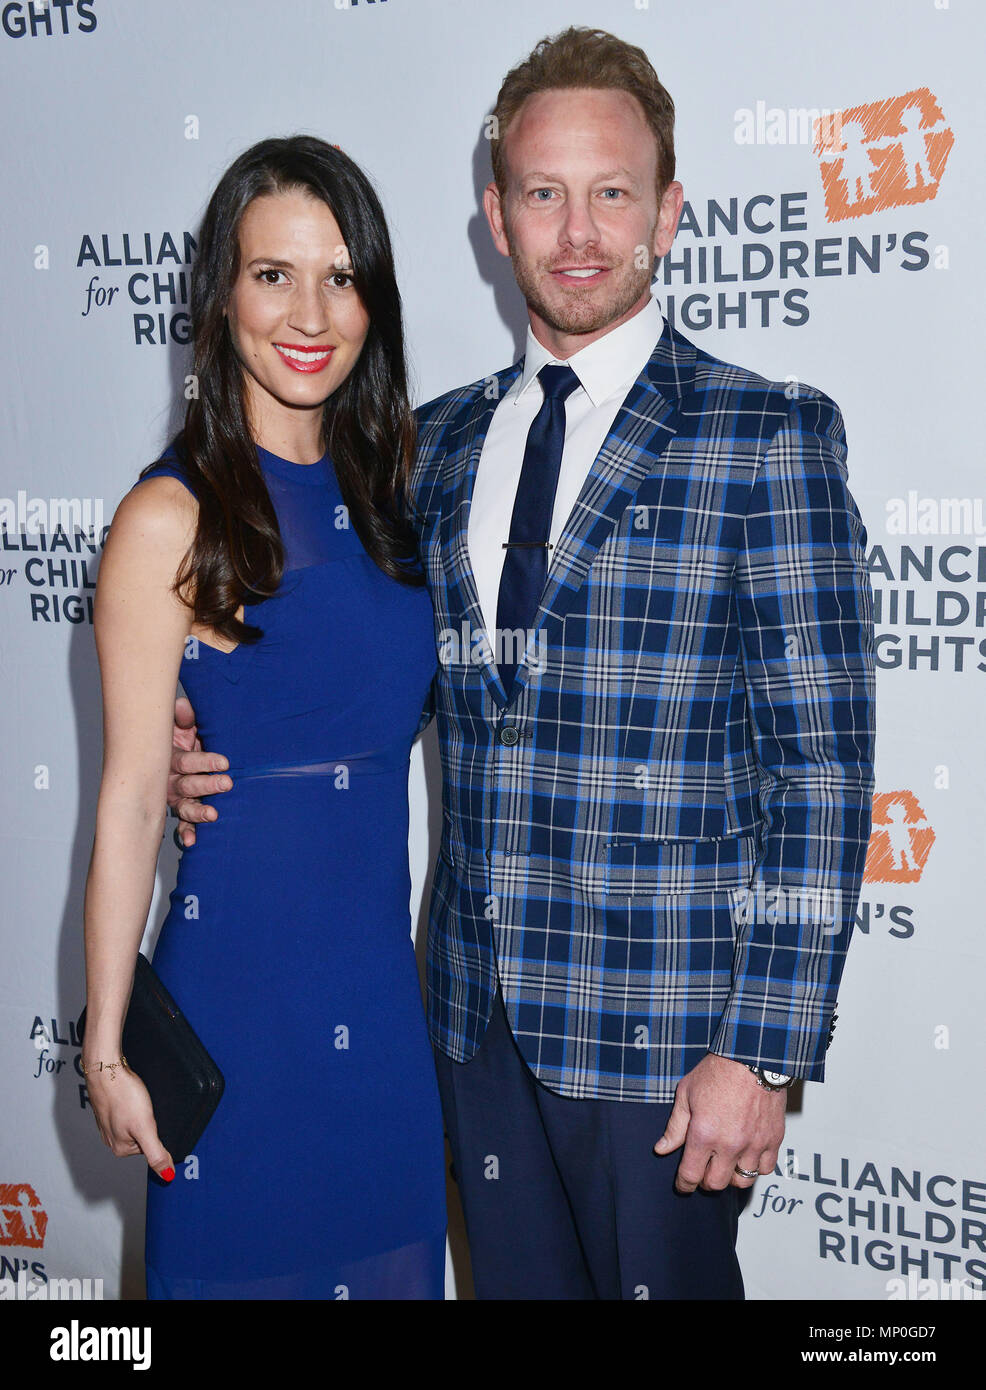 Ian Ziering, Erin Kristine Ludwig 010 arriving The Alliance for ChildrenÕs RightsÕ 24th Annual Dinner at the Beverly Hilton Hotel in Los Angeles. March 10, 2016.Ian Ziering, Erin Kristine Ludwig 010 ------------- Red Carpet Event, Vertical, USA, Film Industry, Celebrities,  Photography, Bestof, Arts Culture and Entertainment, Topix Celebrities fashion /  Vertical, Best of, Event in Hollywood Life - California,  Red Carpet and backstage, USA, Film Industry, Celebrities,  movie celebrities, TV celebrities, Music celebrities, Photography, Bestof, Arts Culture and Entertainment,  Topix, vertical,  - Stock Image